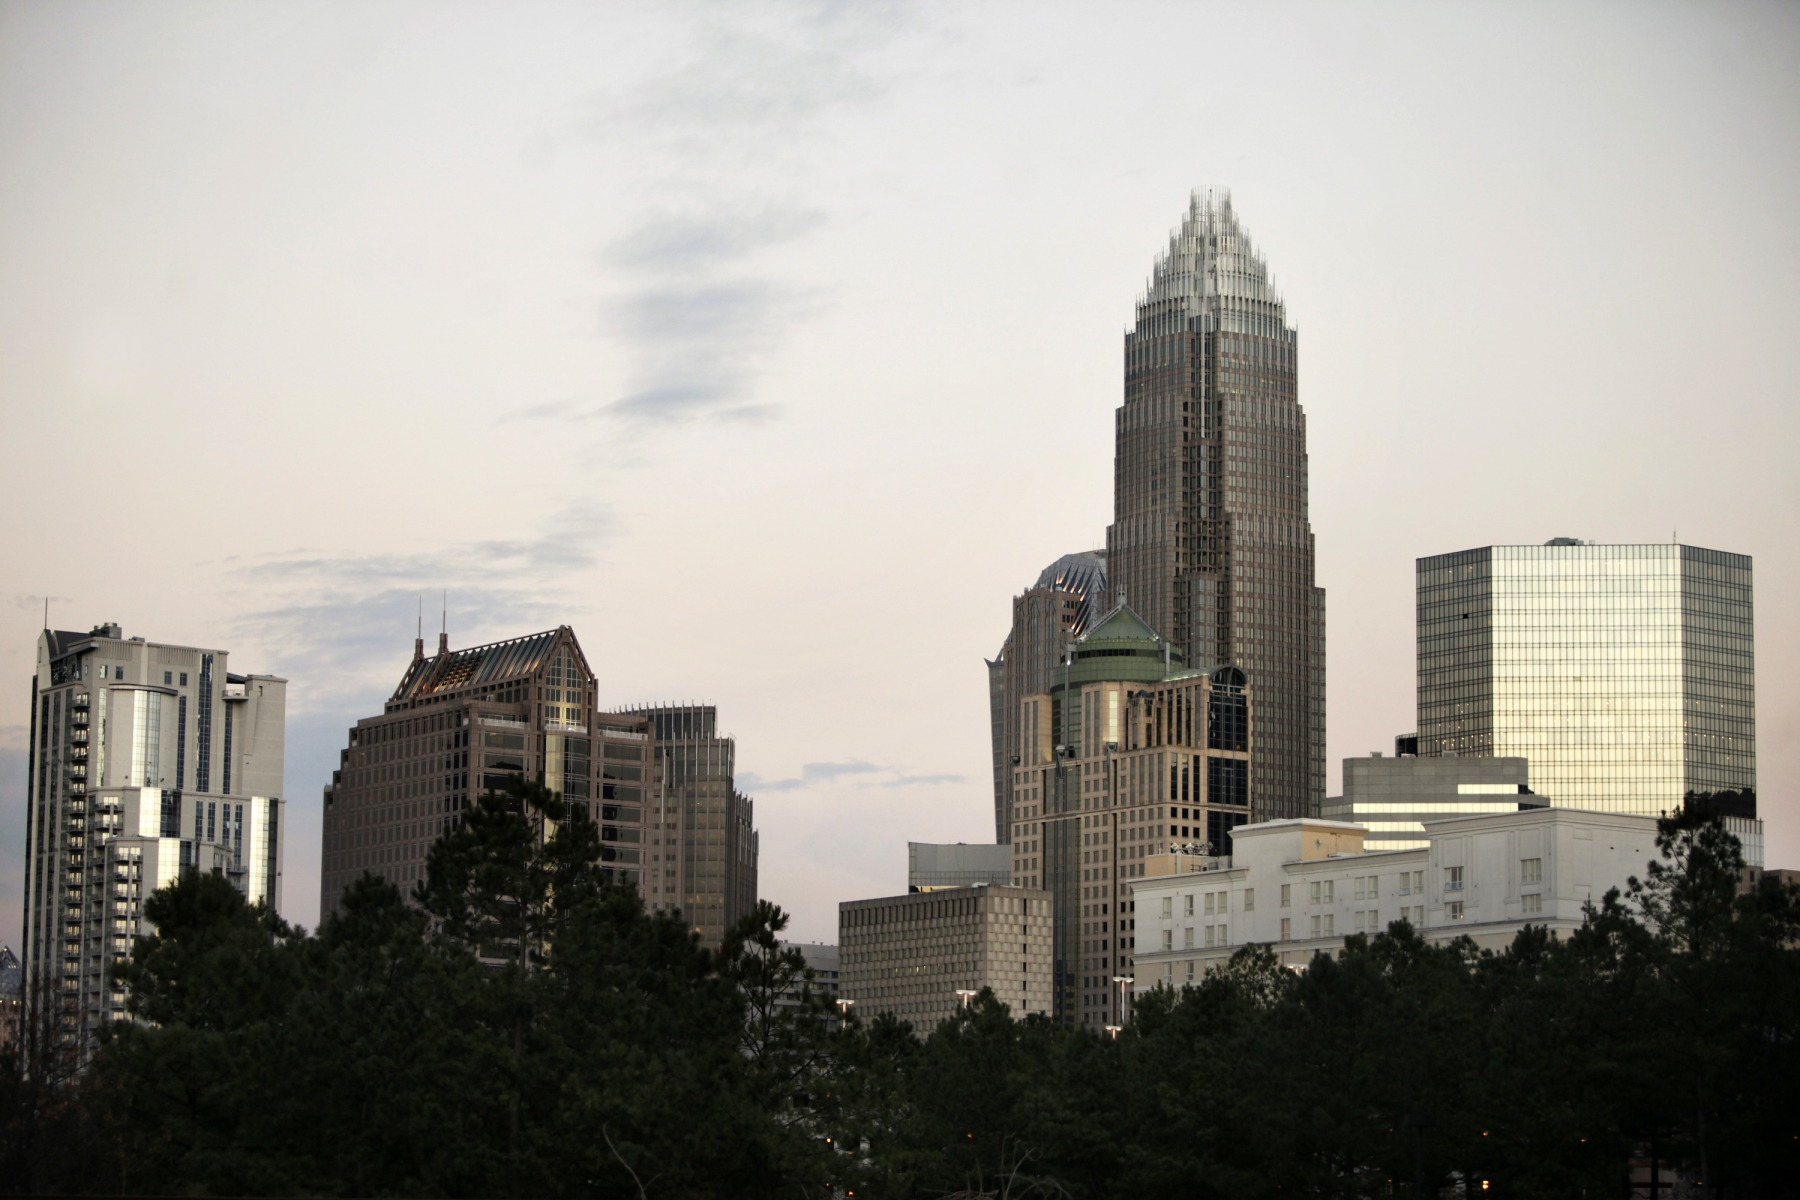 Strains on Charlotte, NC as Wall Street of the South Booms